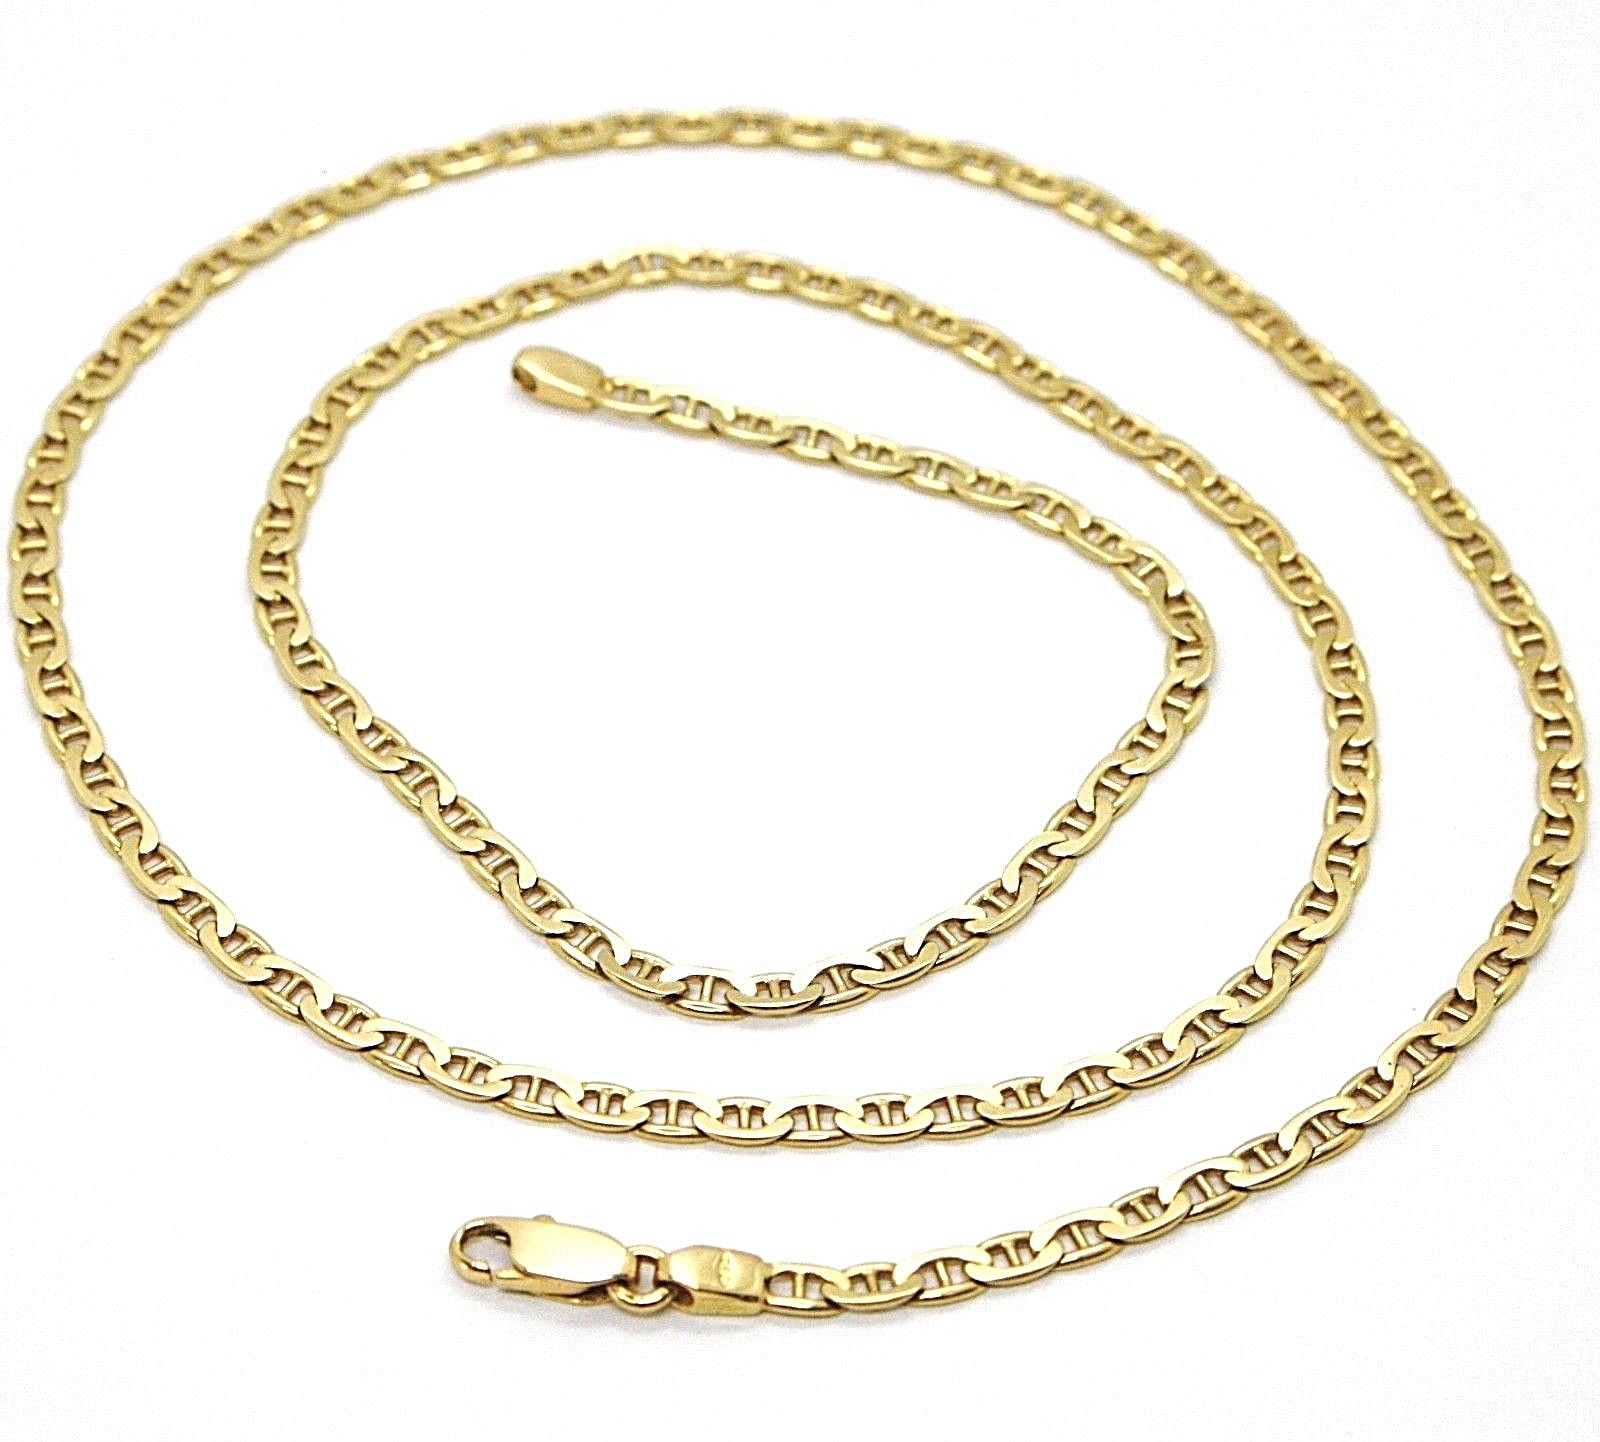 18K YELLOW SOLID GOLD CHAIN FLAT NAVY MARINER CROSSED LINK 3 MM, 20 INCHES